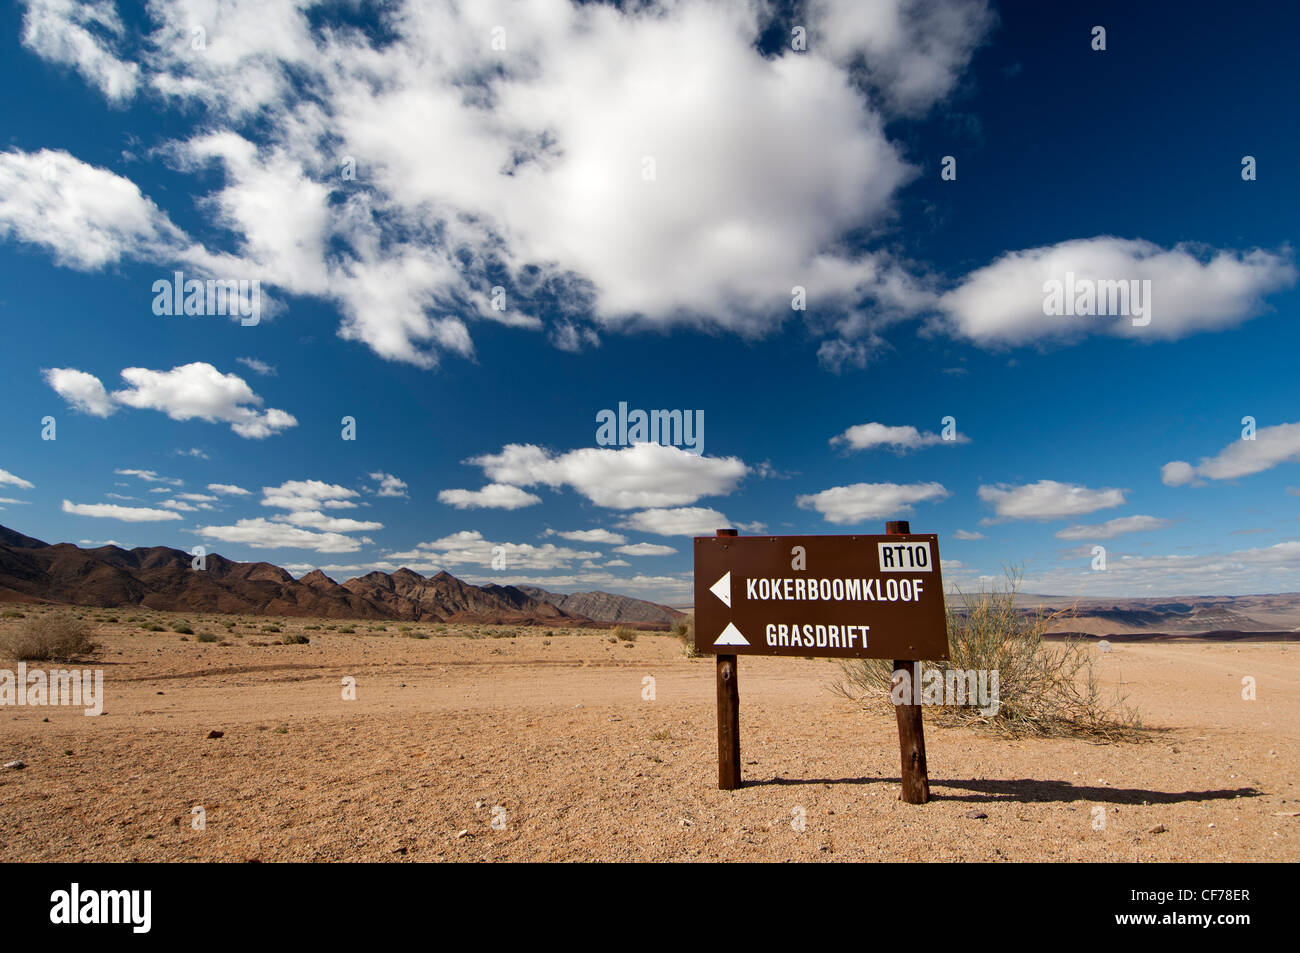 Directional sign for Route 10 to Kokerboomkloof and Grasdrift in the Richtersveld National Park, South Africa - Stock Image